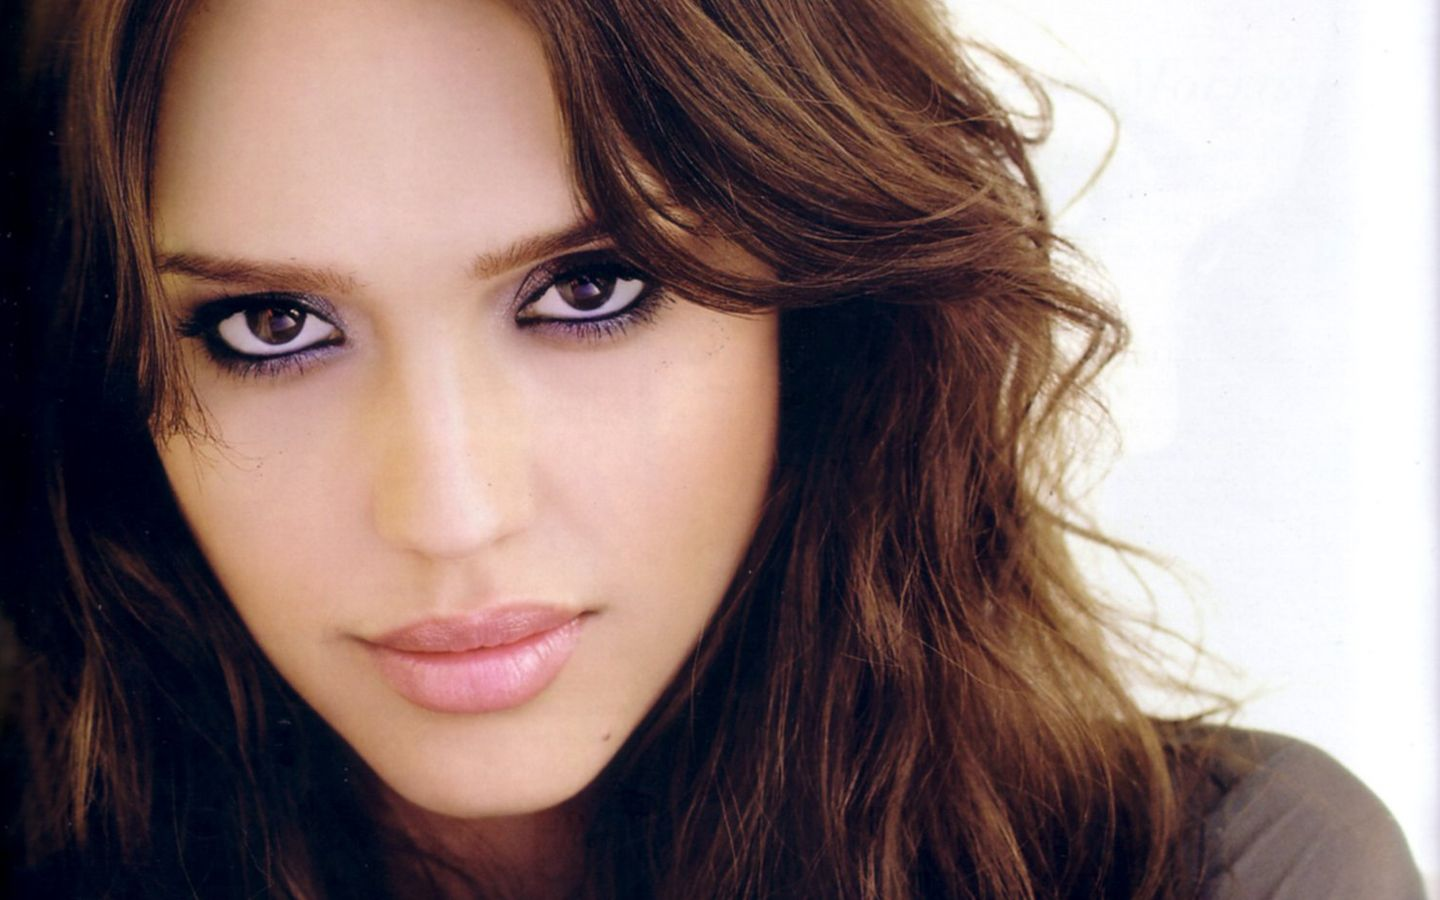 jessica alba stylejessica alba 2017, jessica alba 2016, jessica alba style, jessica alba films, jessica alba hair, jessica alba movies, jessica alba street style, jessica alba wiki, jessica alba instagram, jessica alba net worth, jessica alba 2007, jessica alba make up, jessica alba site, jessica alba filmography, jessica alba wikipedia, jessica alba style 2017, jessica alba kino, jessica alba наркоз, jessica alba 2015, jessica alba imdb